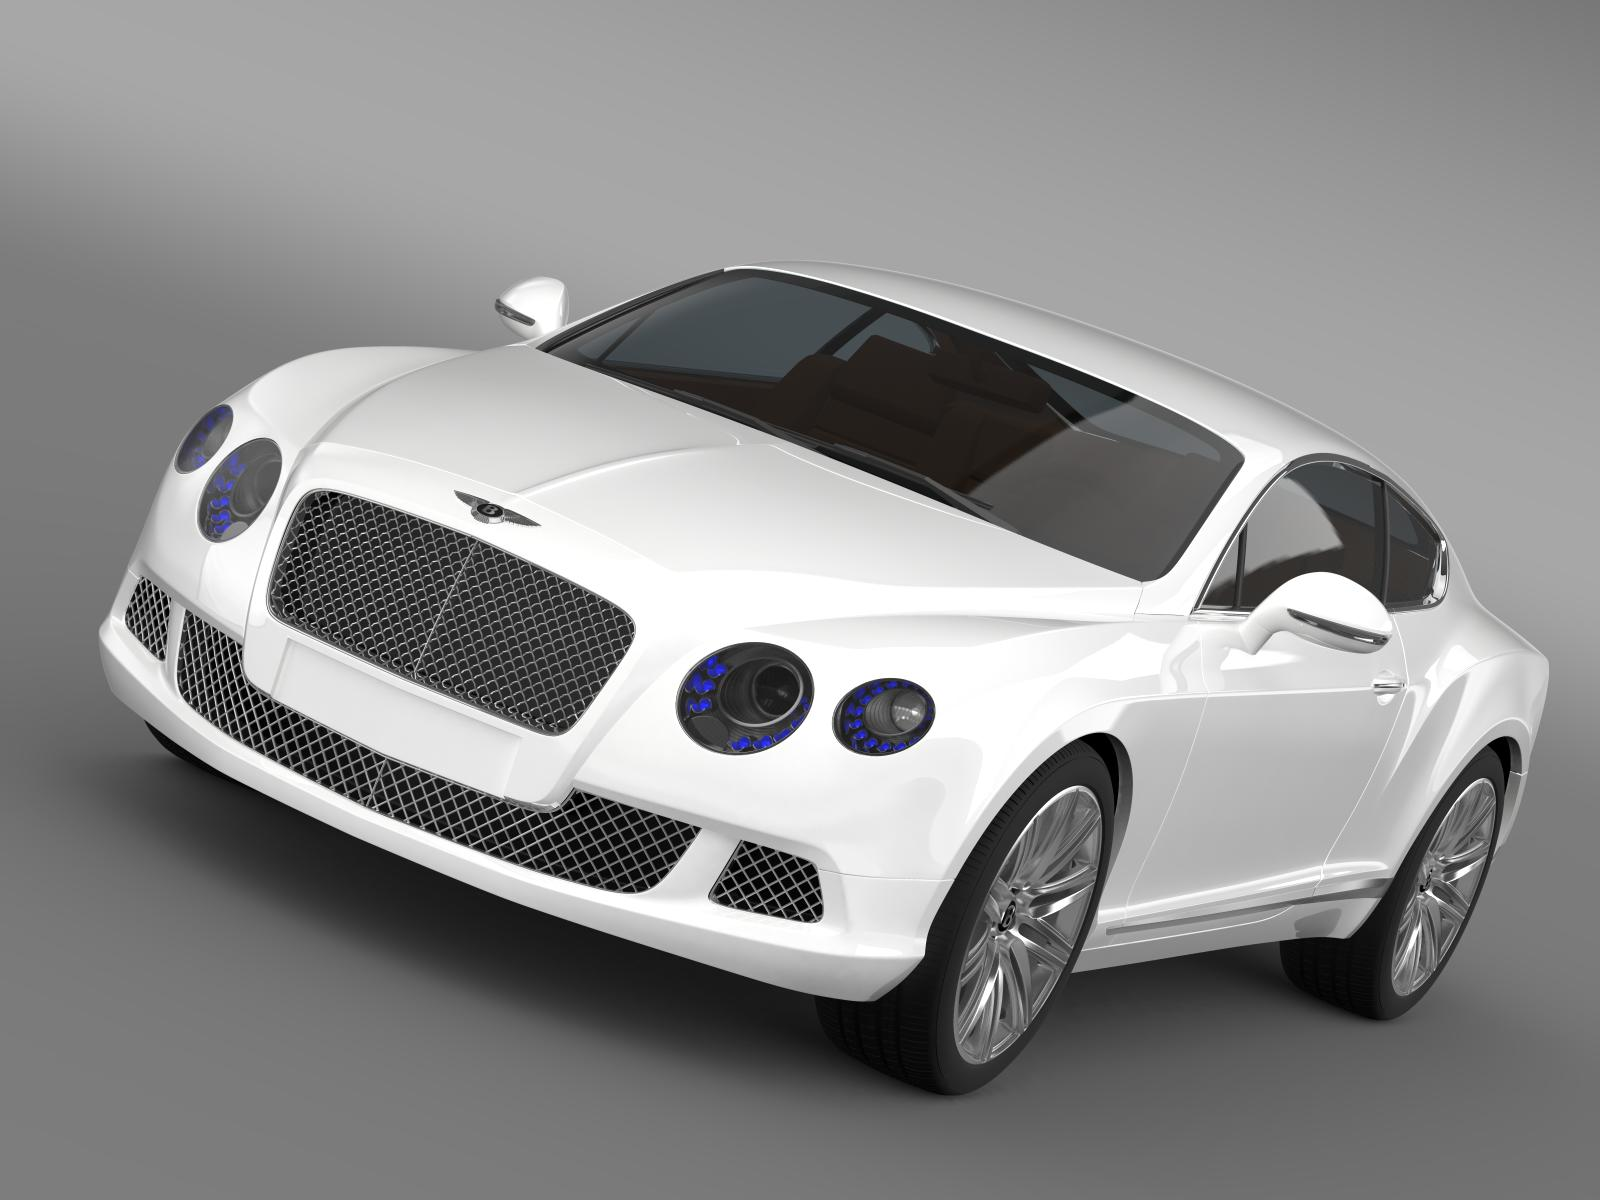 bentley continental gt speed 2012 3d model 3ds max fbx c4d lwo ma mb hrc xsi obj 163422